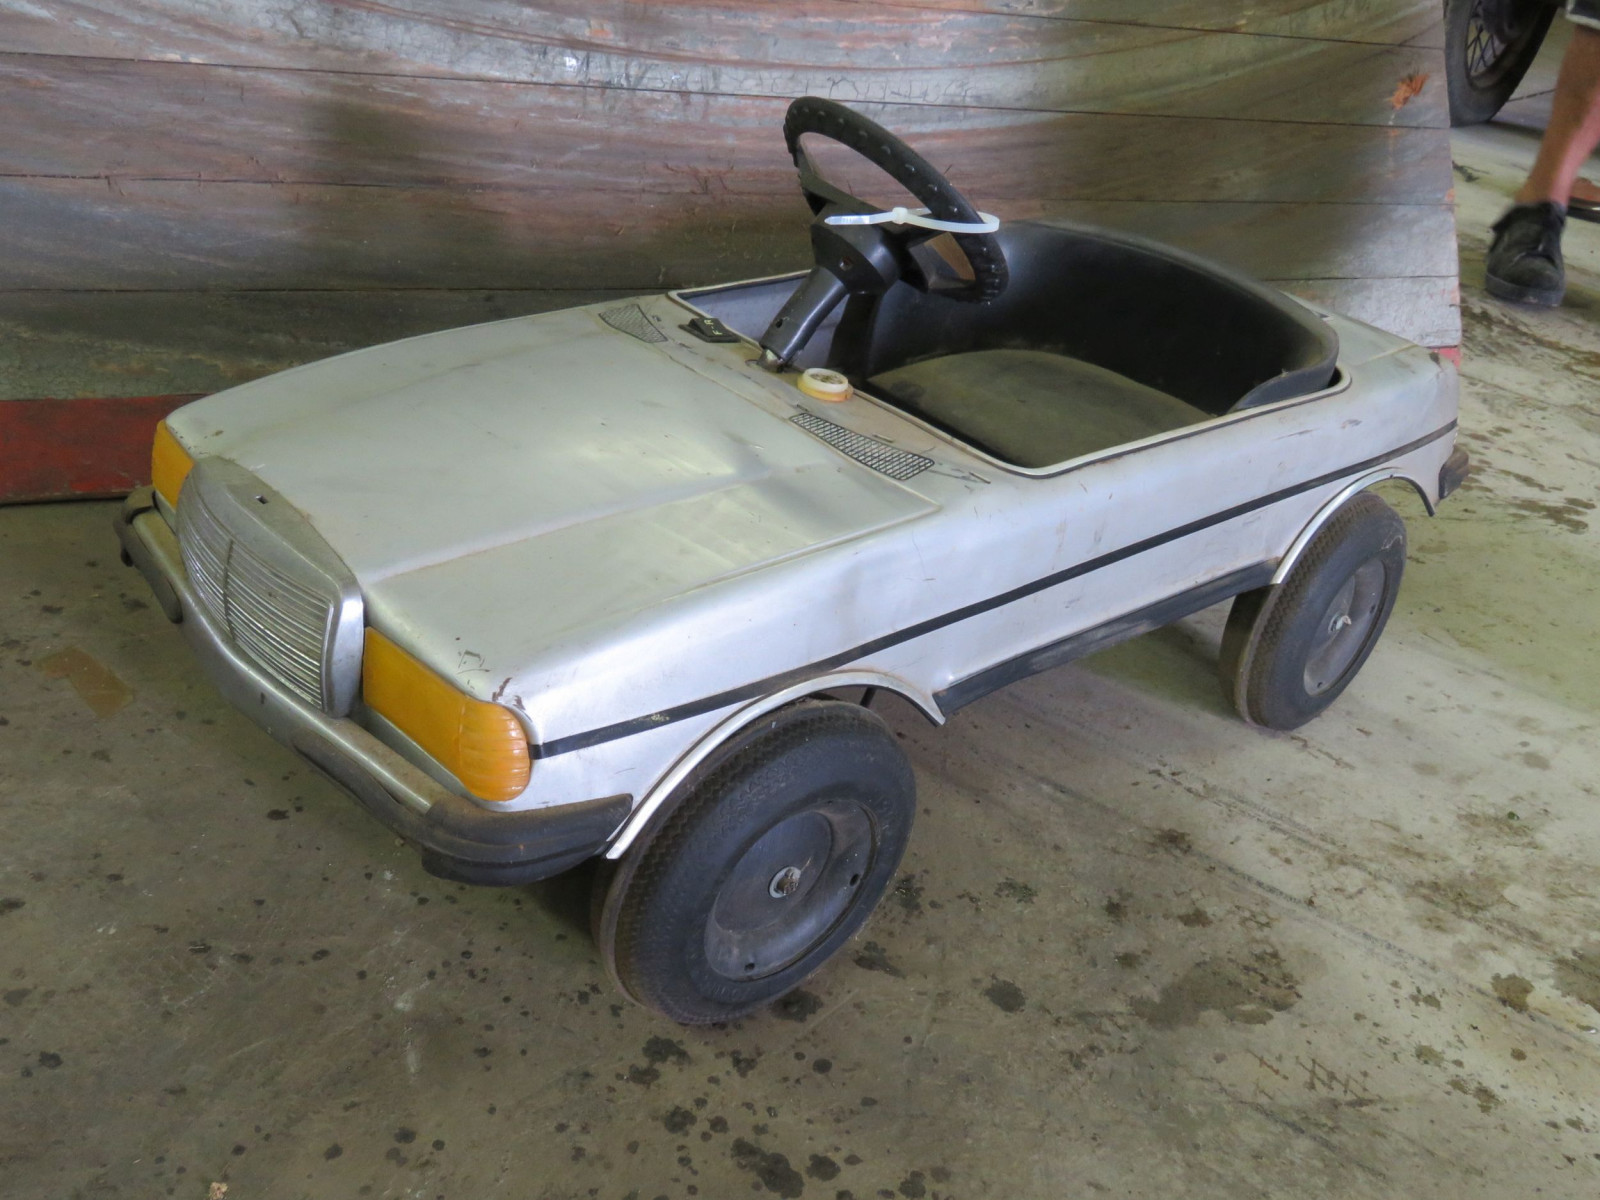 1987 Mercedes Pedal Car - Image 1